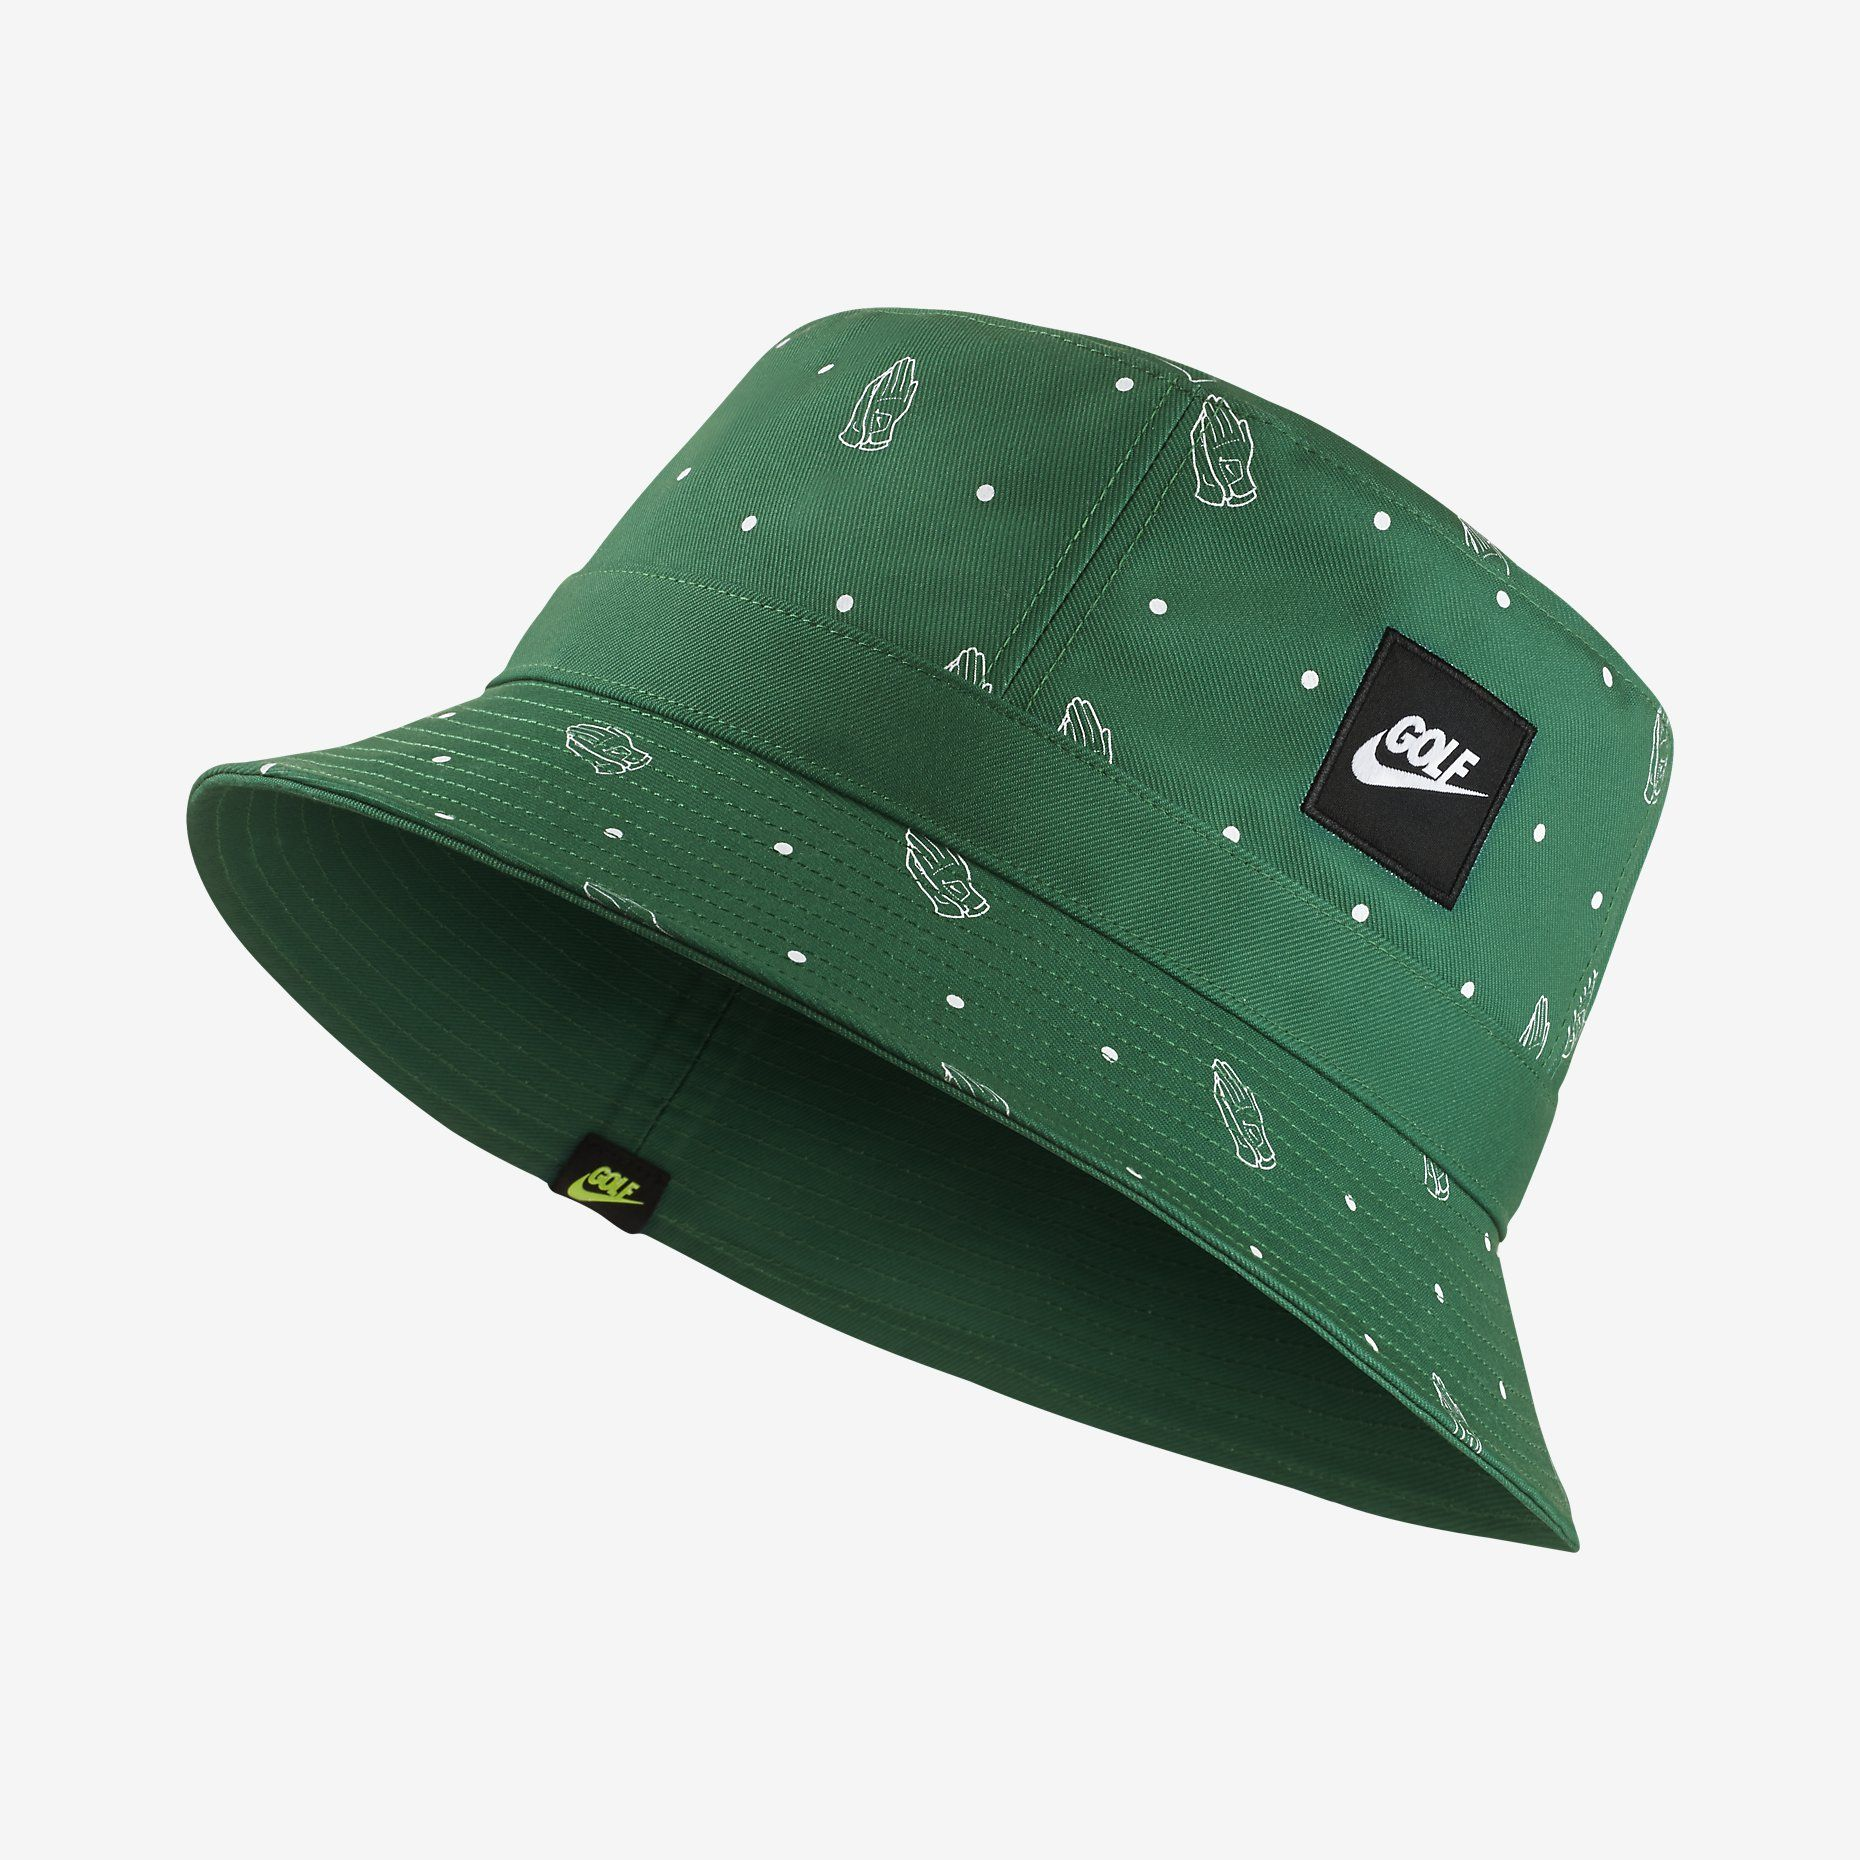 76f315d37c4305 Nike Graphic Golf Bucket Hat. Nike Store | Headwear | Hats, Baseball ...